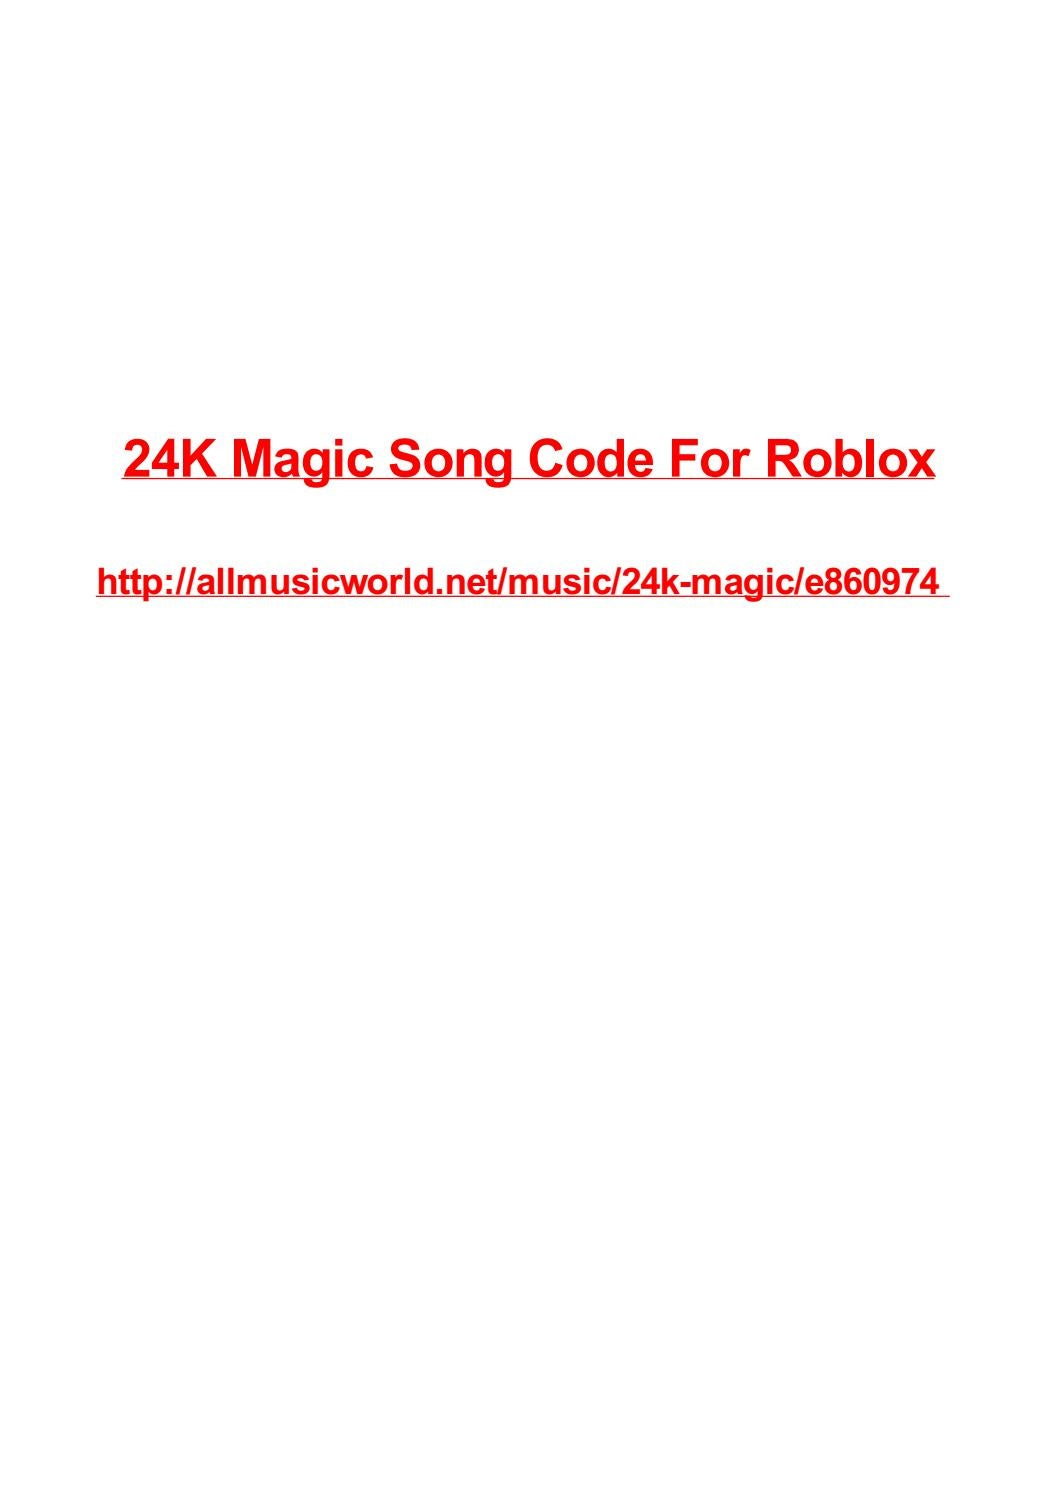 Roblox Song Id Can We Kiss Forever 24k Magic Song Code For Roblox By Max Polansky Issuu